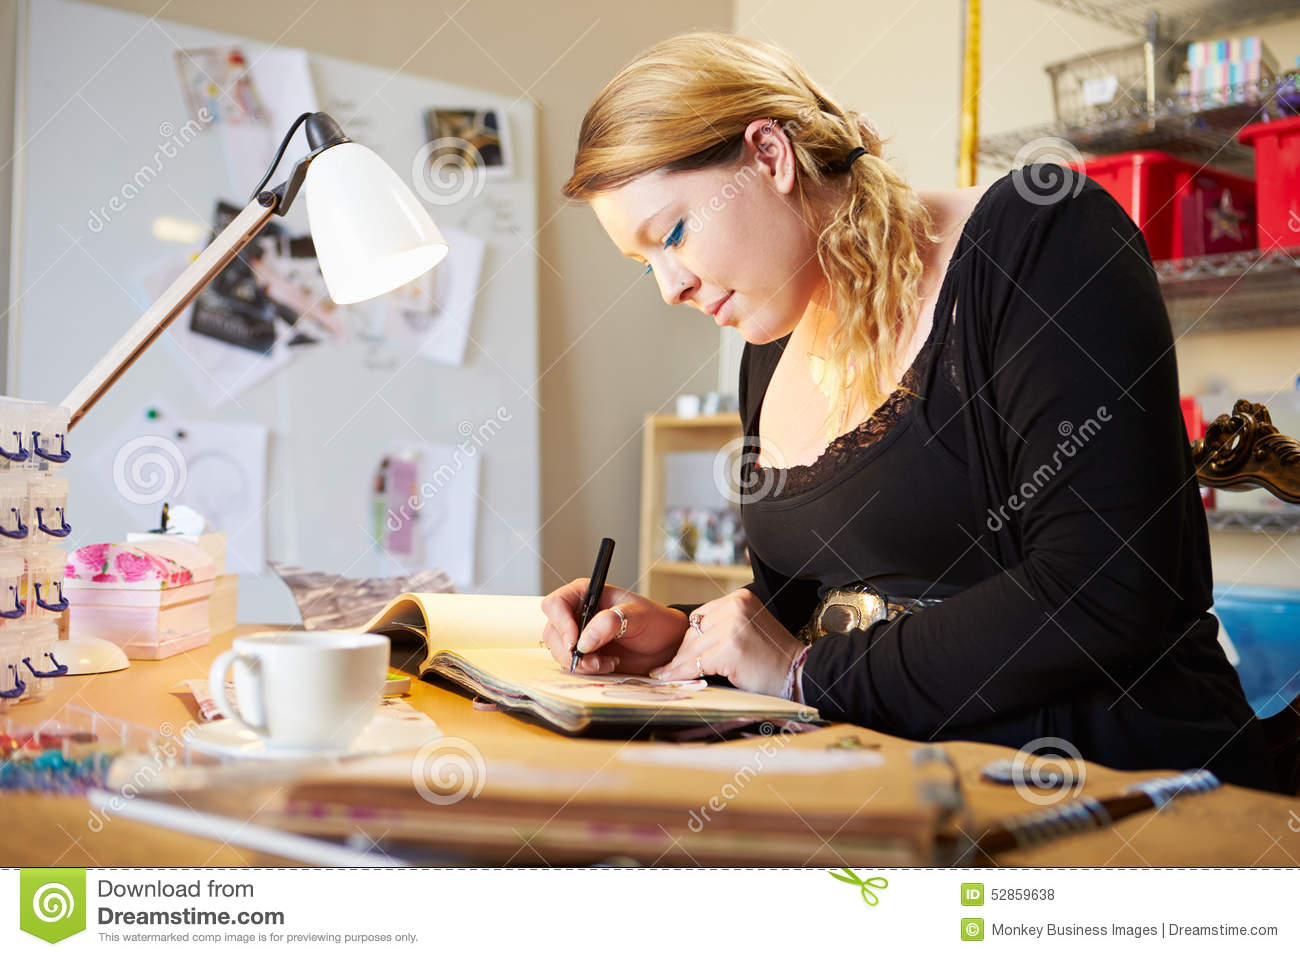 Salon Scrapbooking Young Woman Scrapbooking At Home Stock Photo Image Of Making